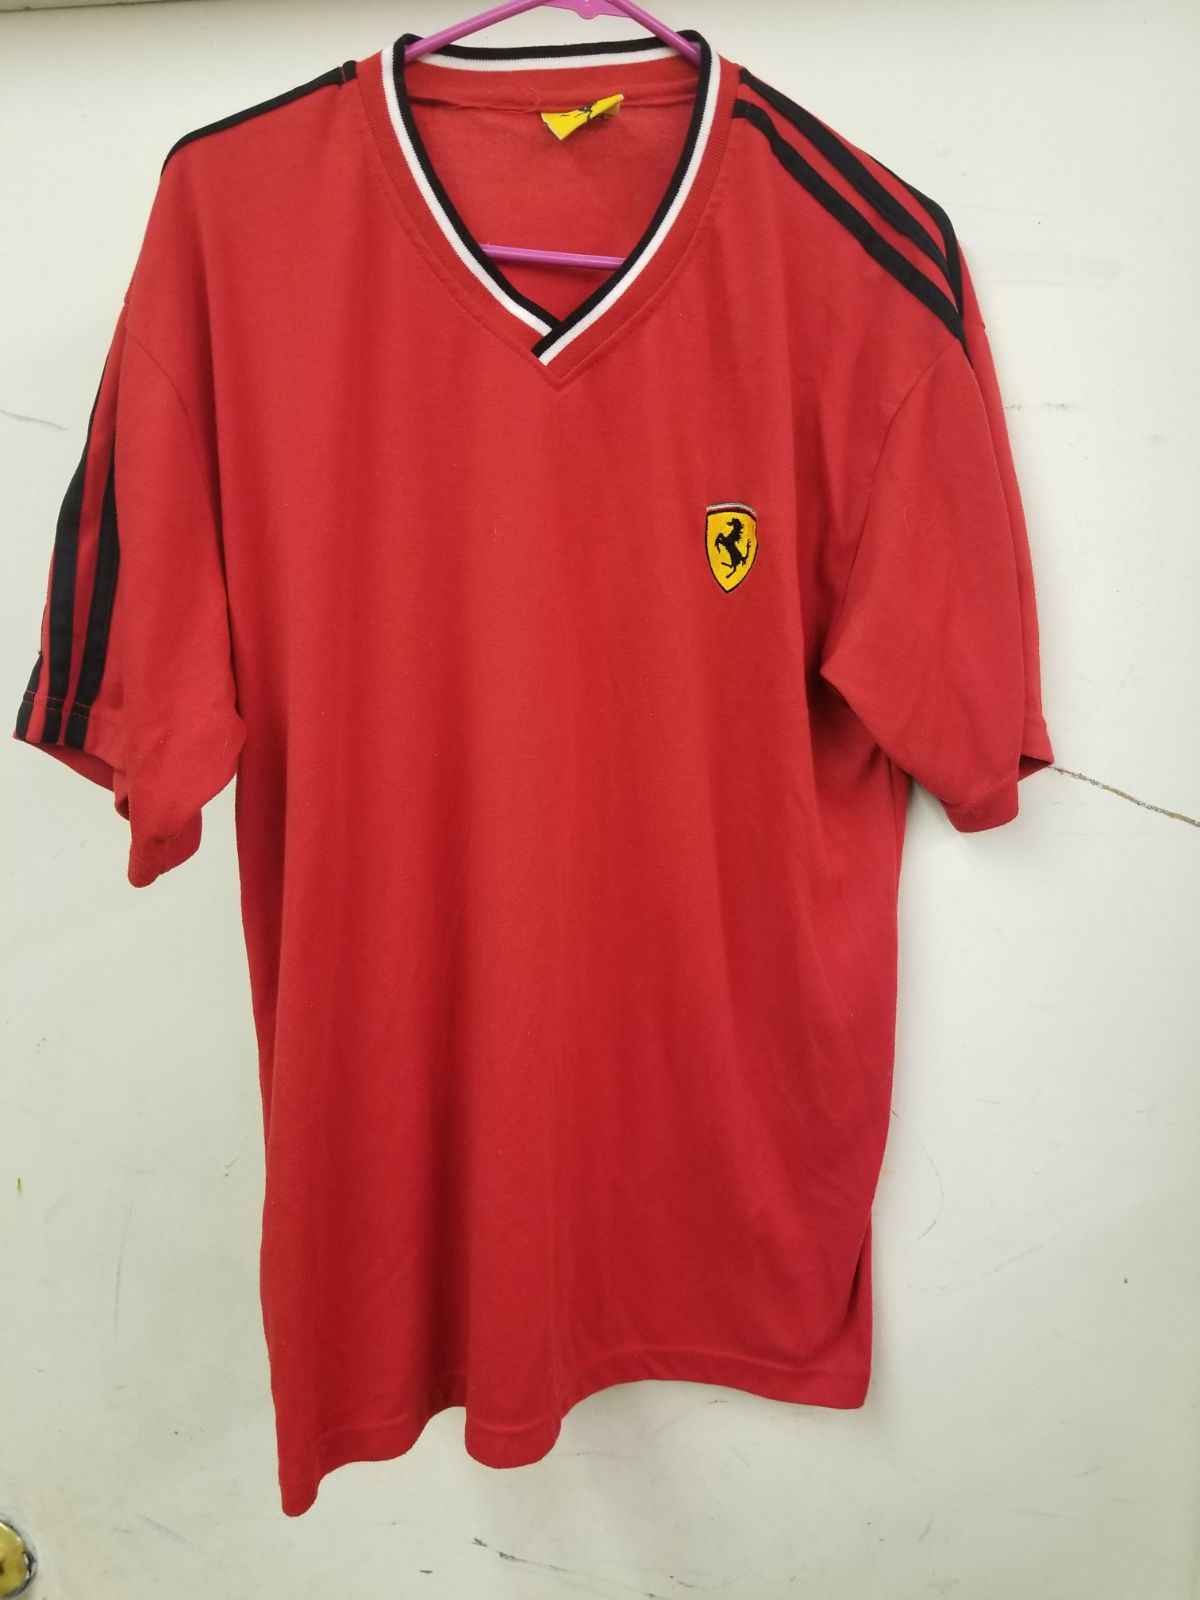 ferrari TSHIRT red and yello size large